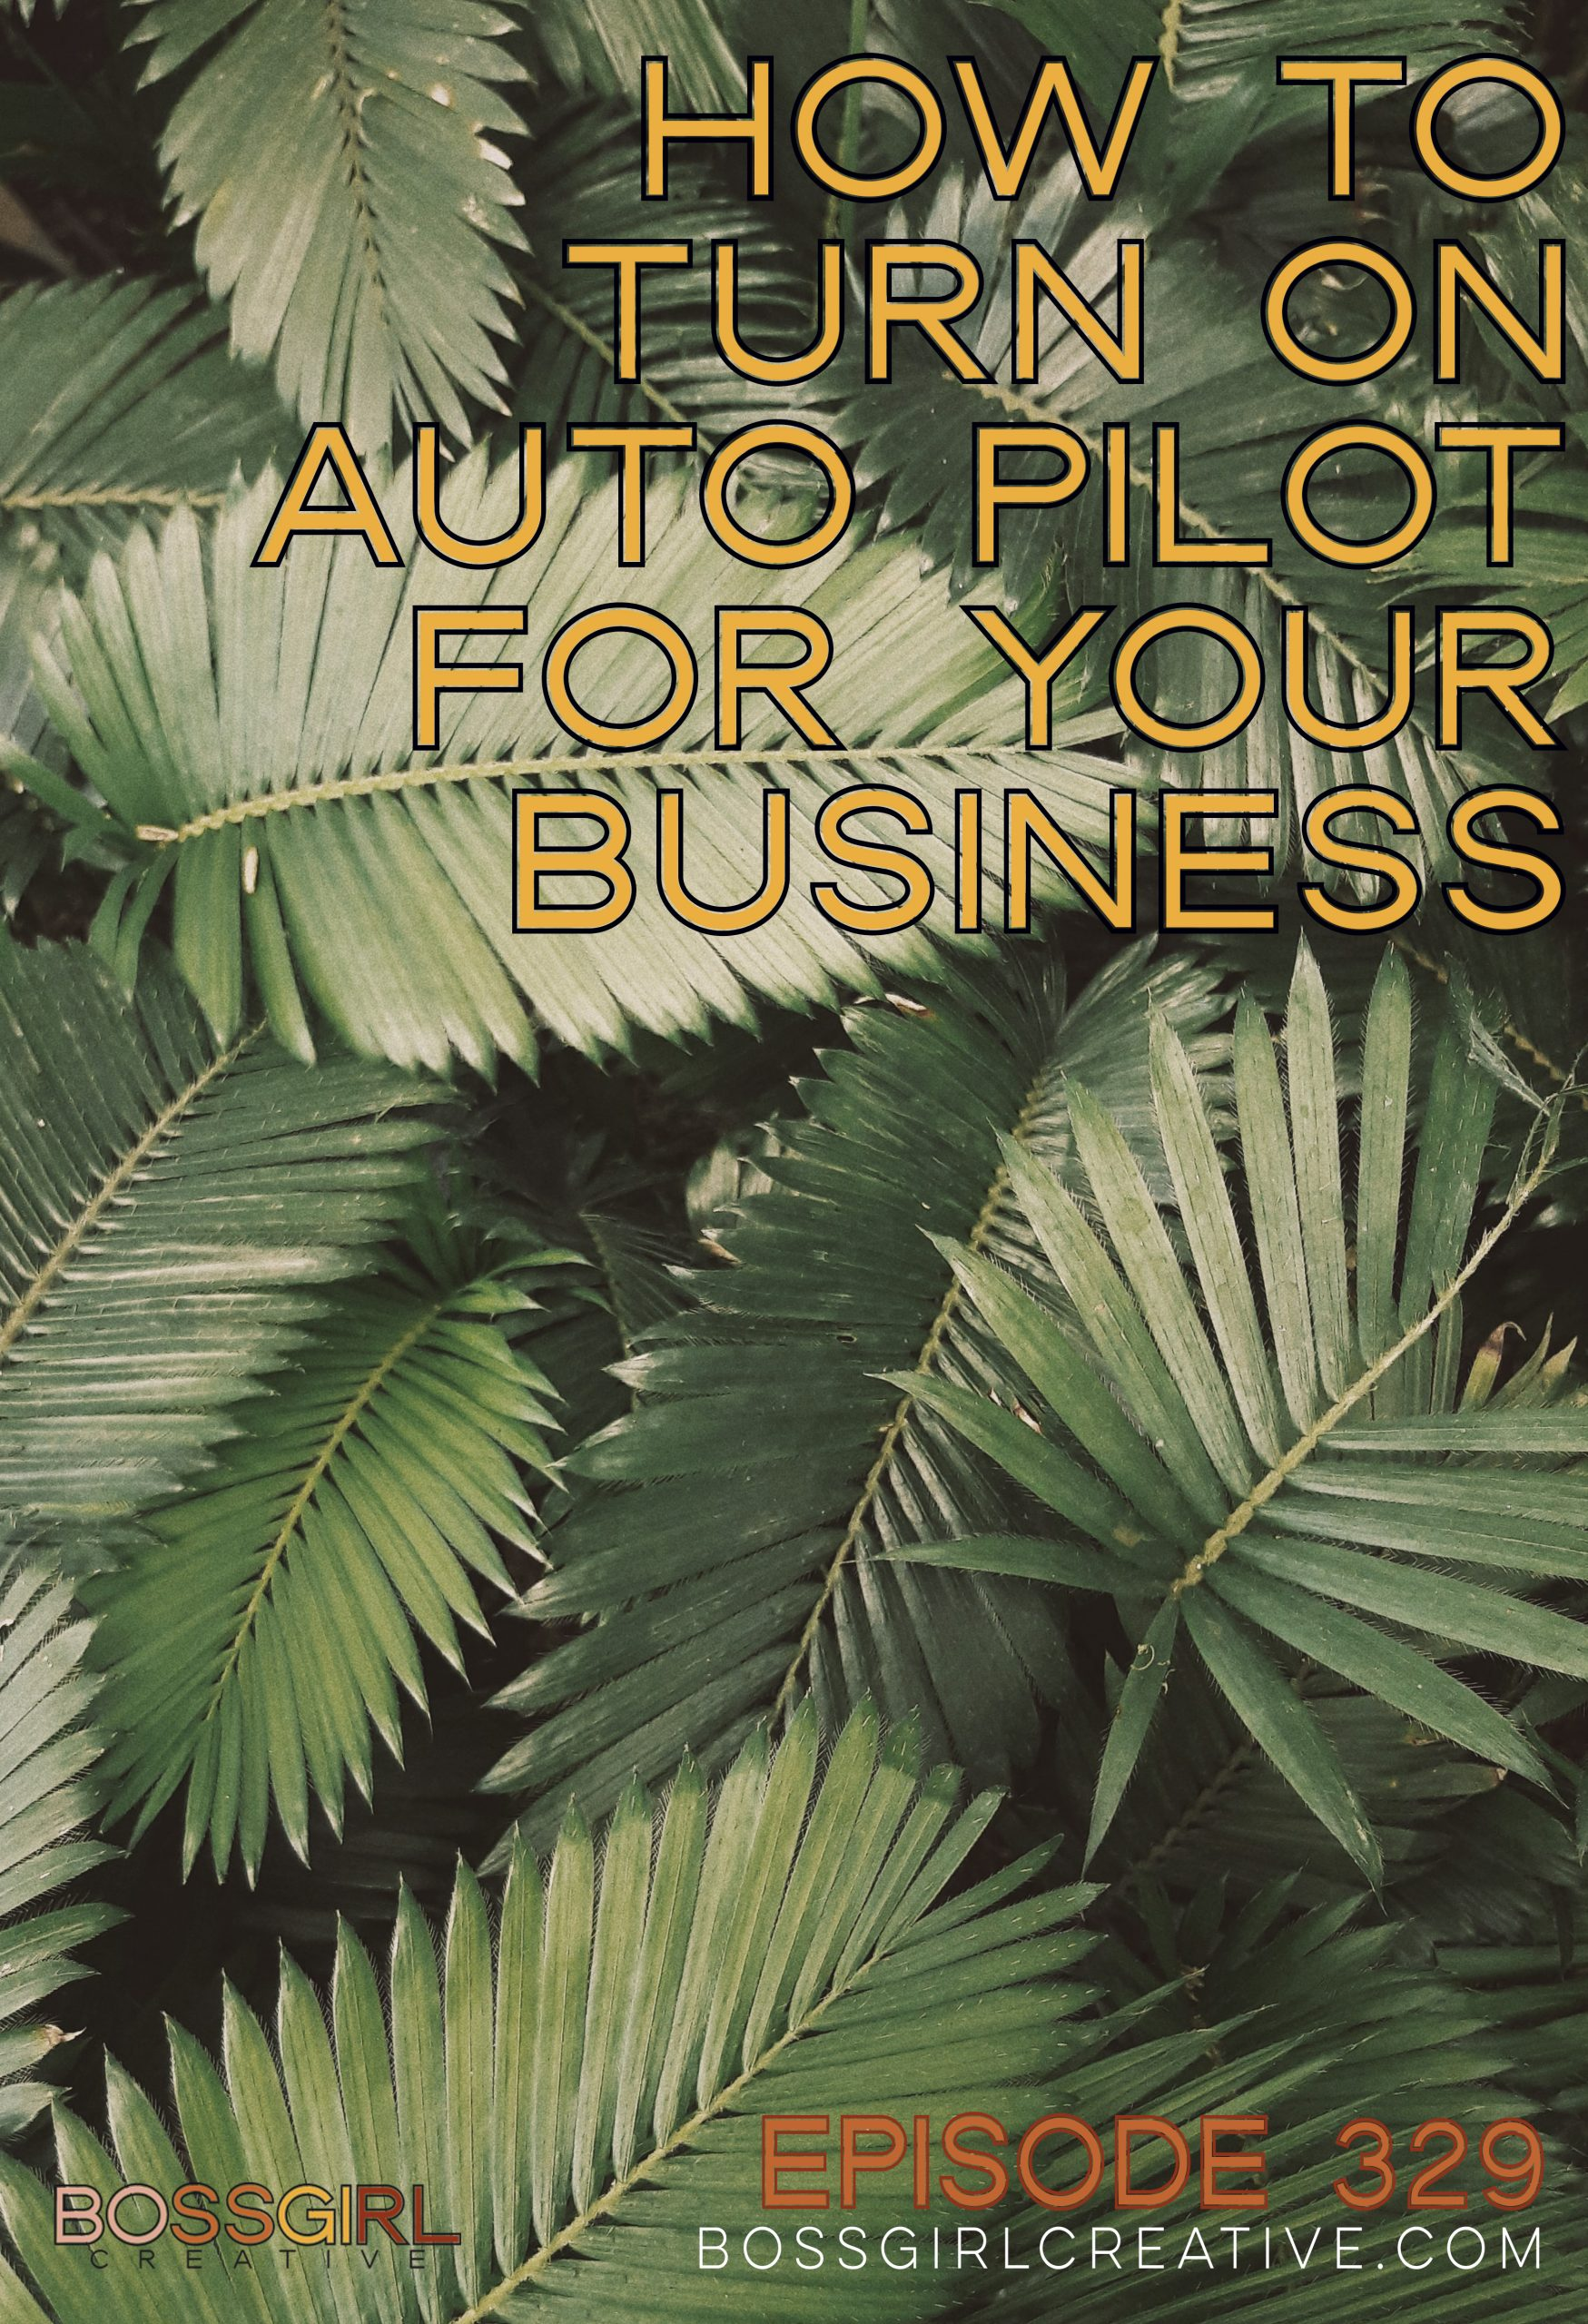 BGC Episode 329 - How to Turn on Auto Pilot for Your Business